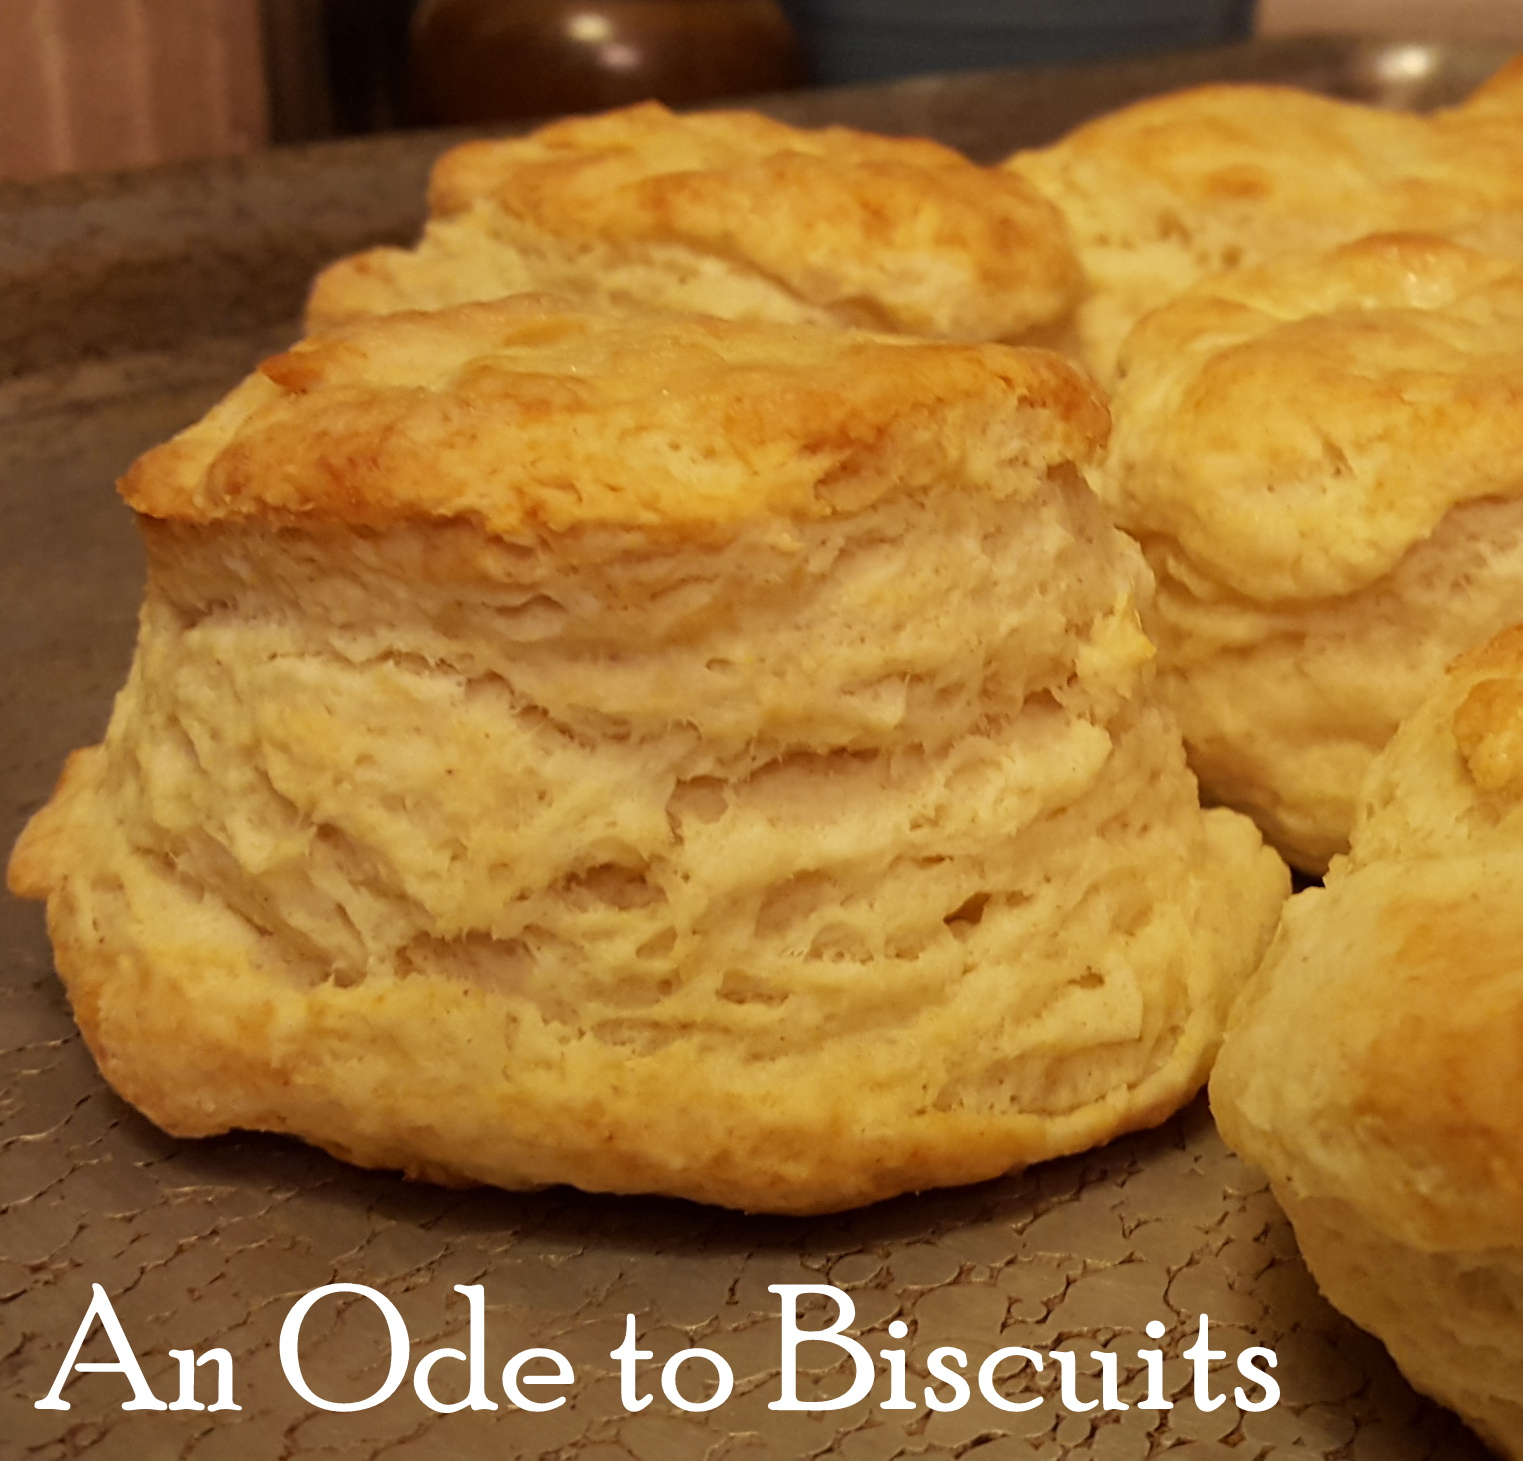 i8tonite: An Ode To Biscuits (with recipe!)